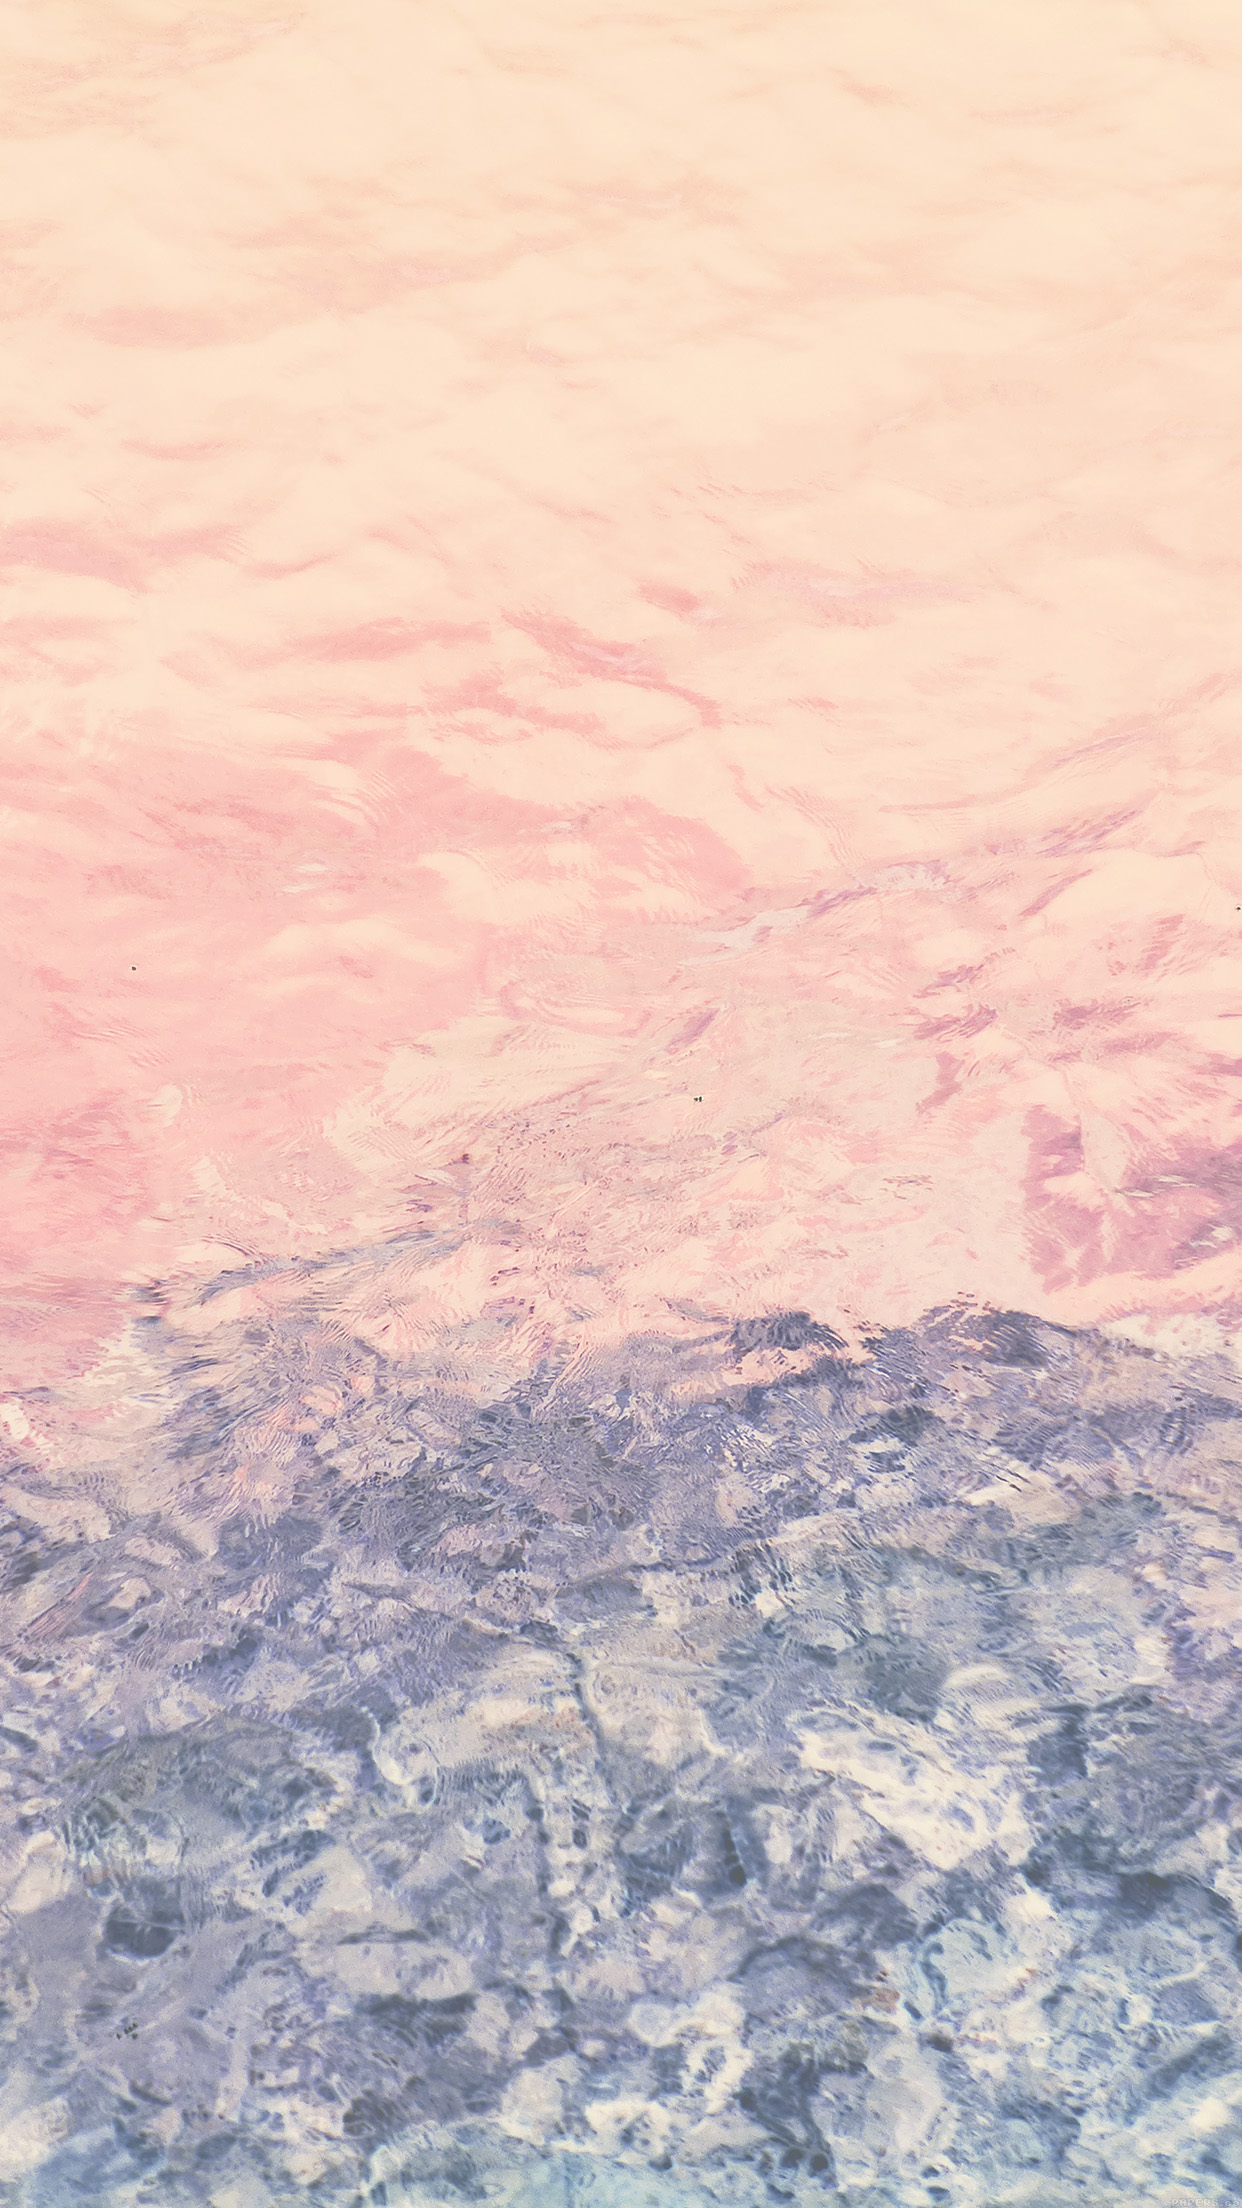 Cute Pink Wallpaper For Iphone 6 Mo98 Water Texture Pink Summer Wave Nature Sea Papers Co